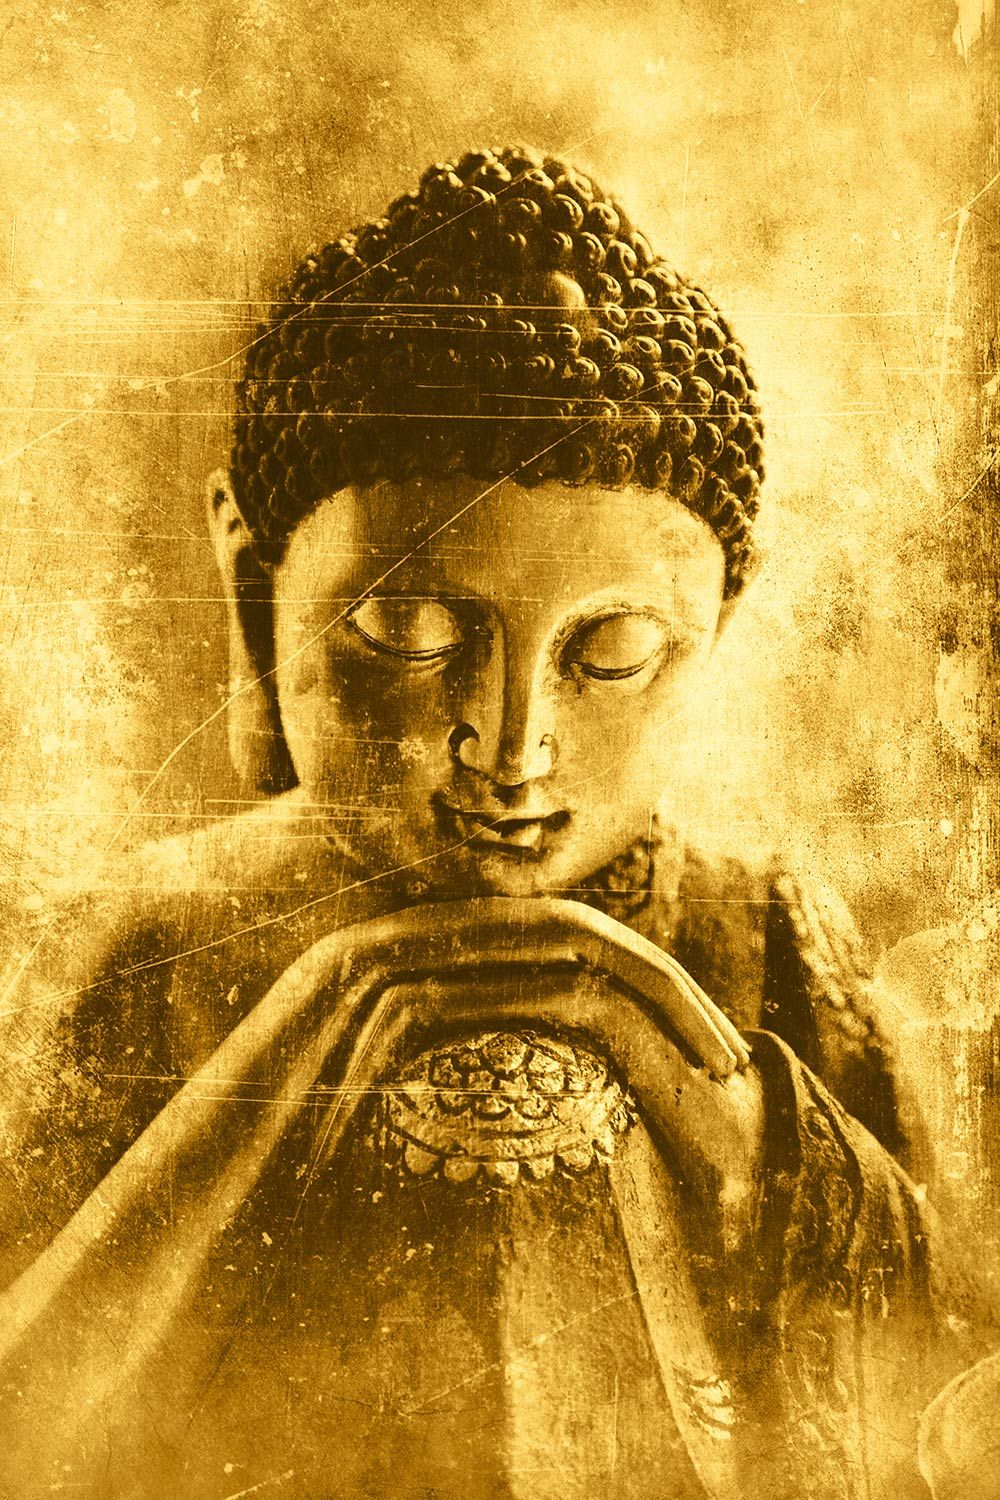 Order Contemplative Buddha Wallpaper to create fantastic wall decor ...